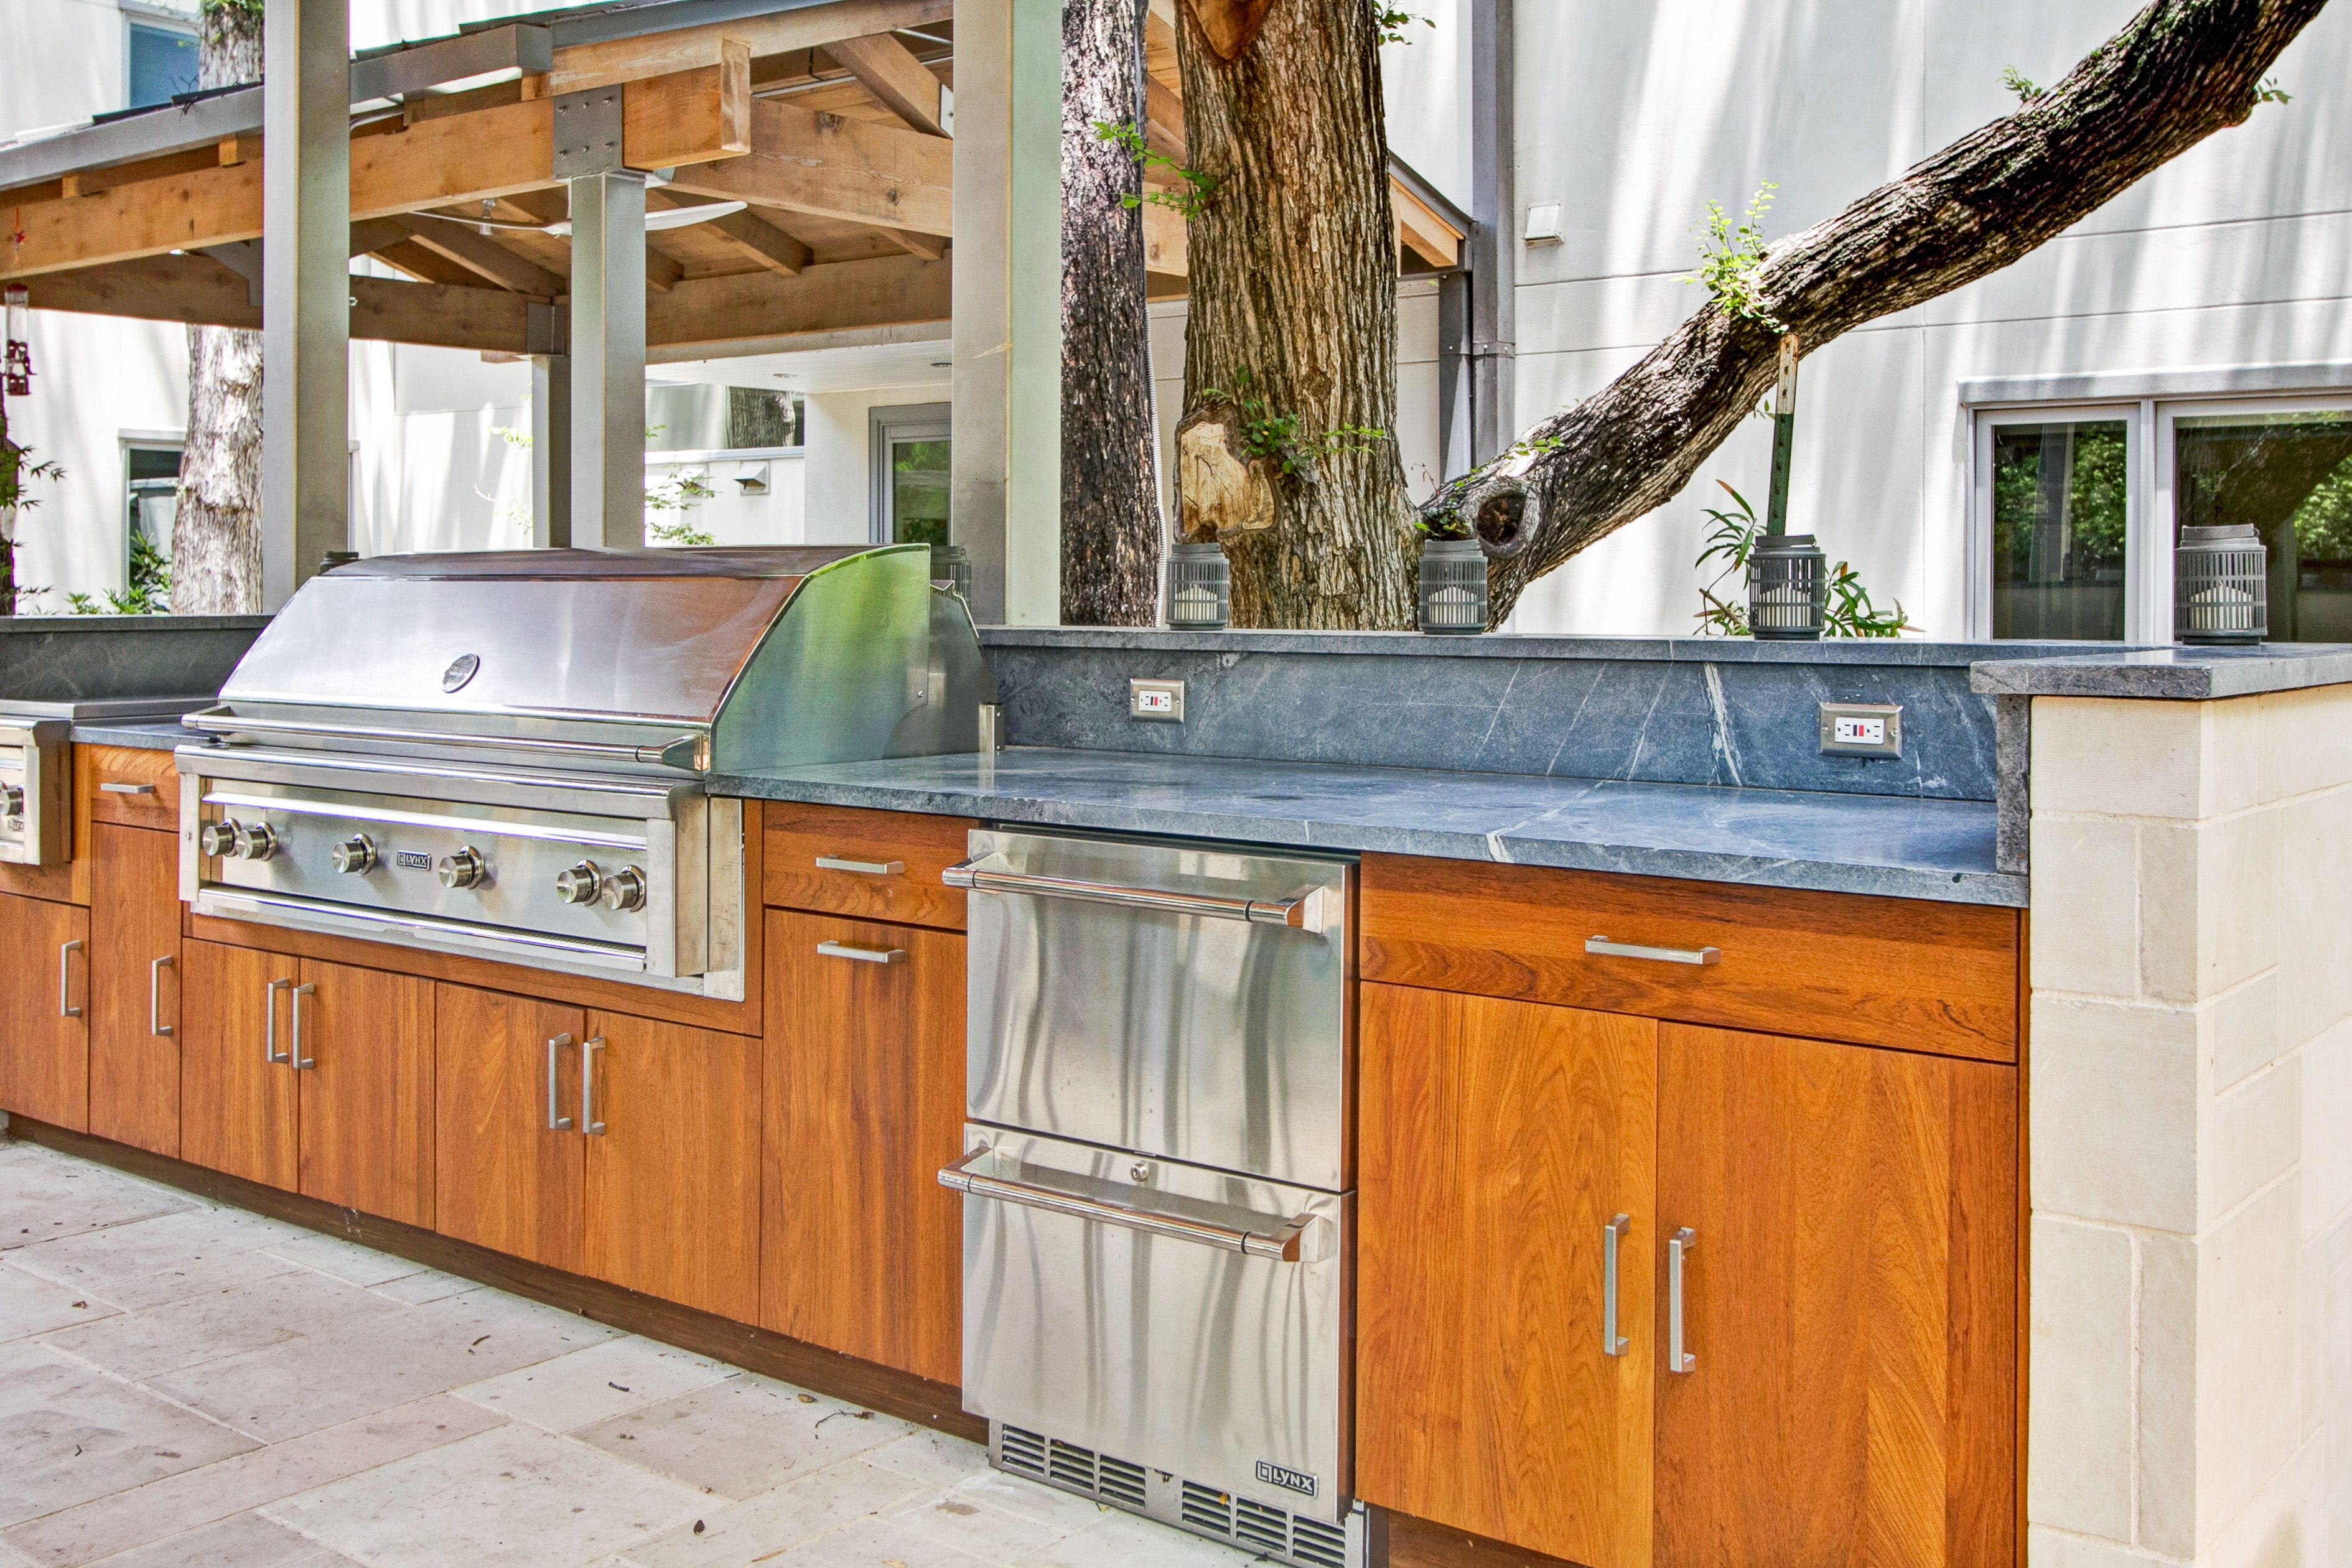 Teak Cabinets With Slab Door Lynx 54 Grill Double Side Burner And Drawer Fridge North Dallas Wildwood Outdoor Kitc Outdoor Kitchen Kitchen Slab Door